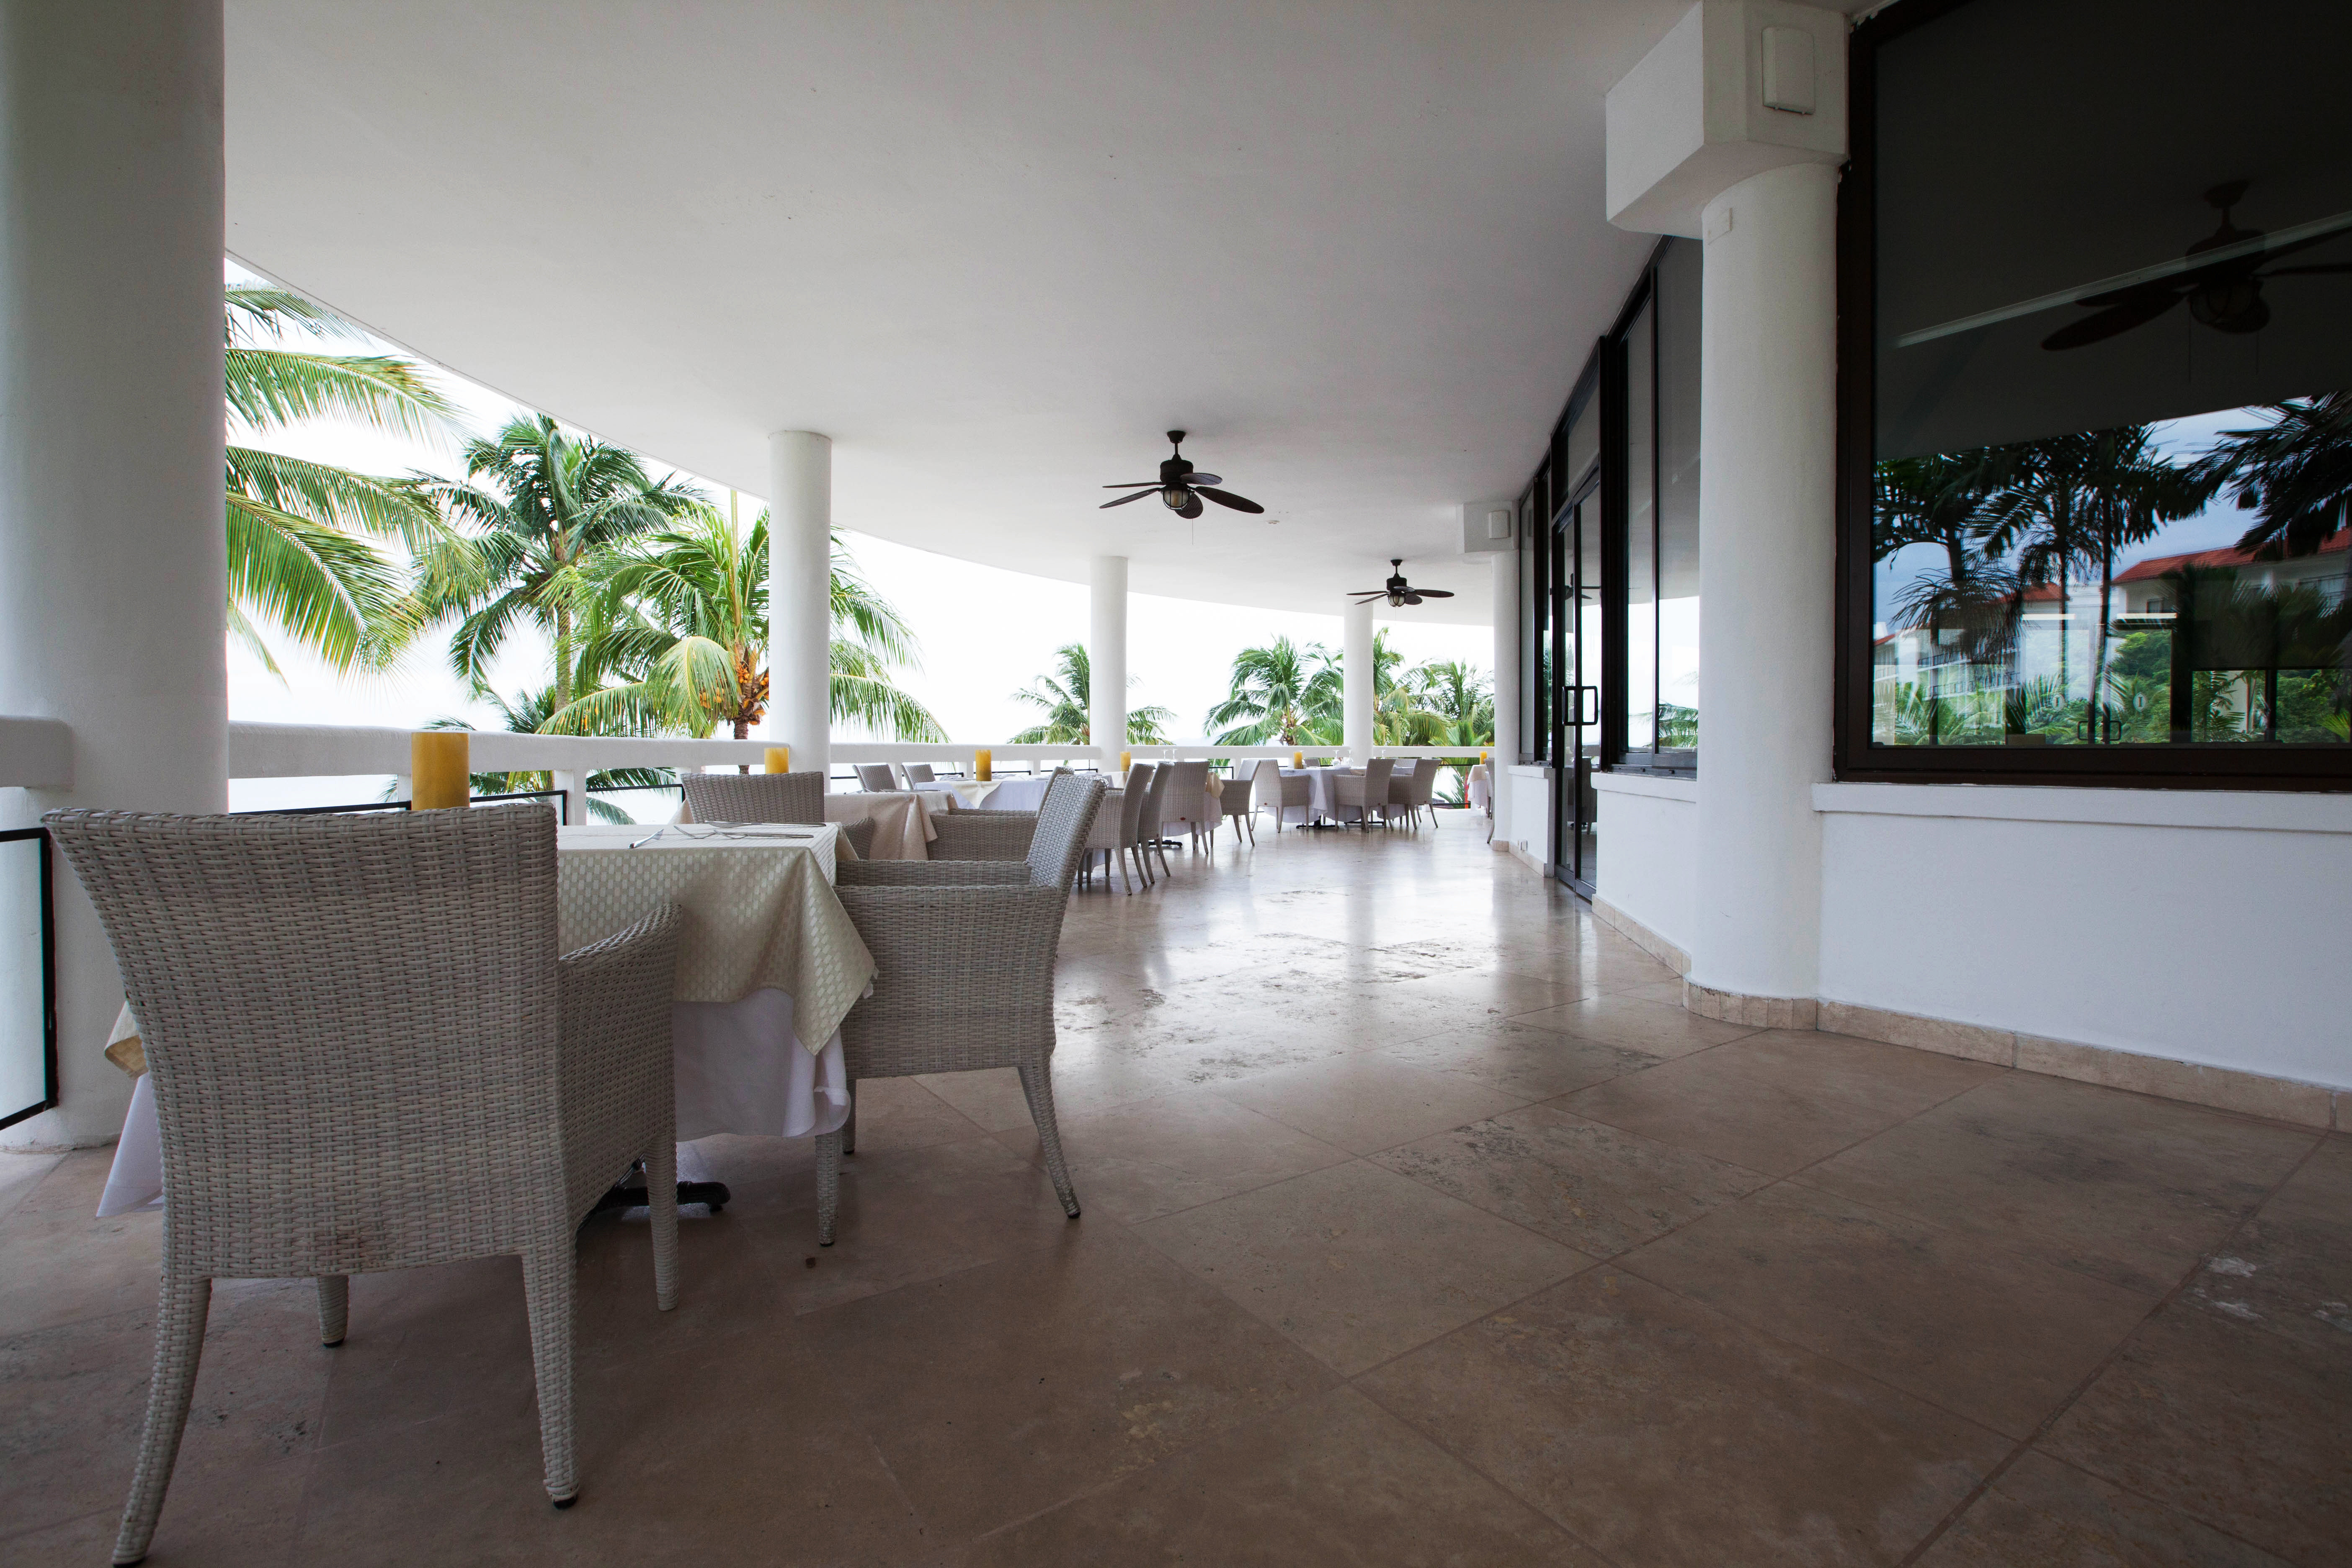 Beachfront Classic Dining Drink Eat Family Resort property building condominium home Lobby flooring living room Villa